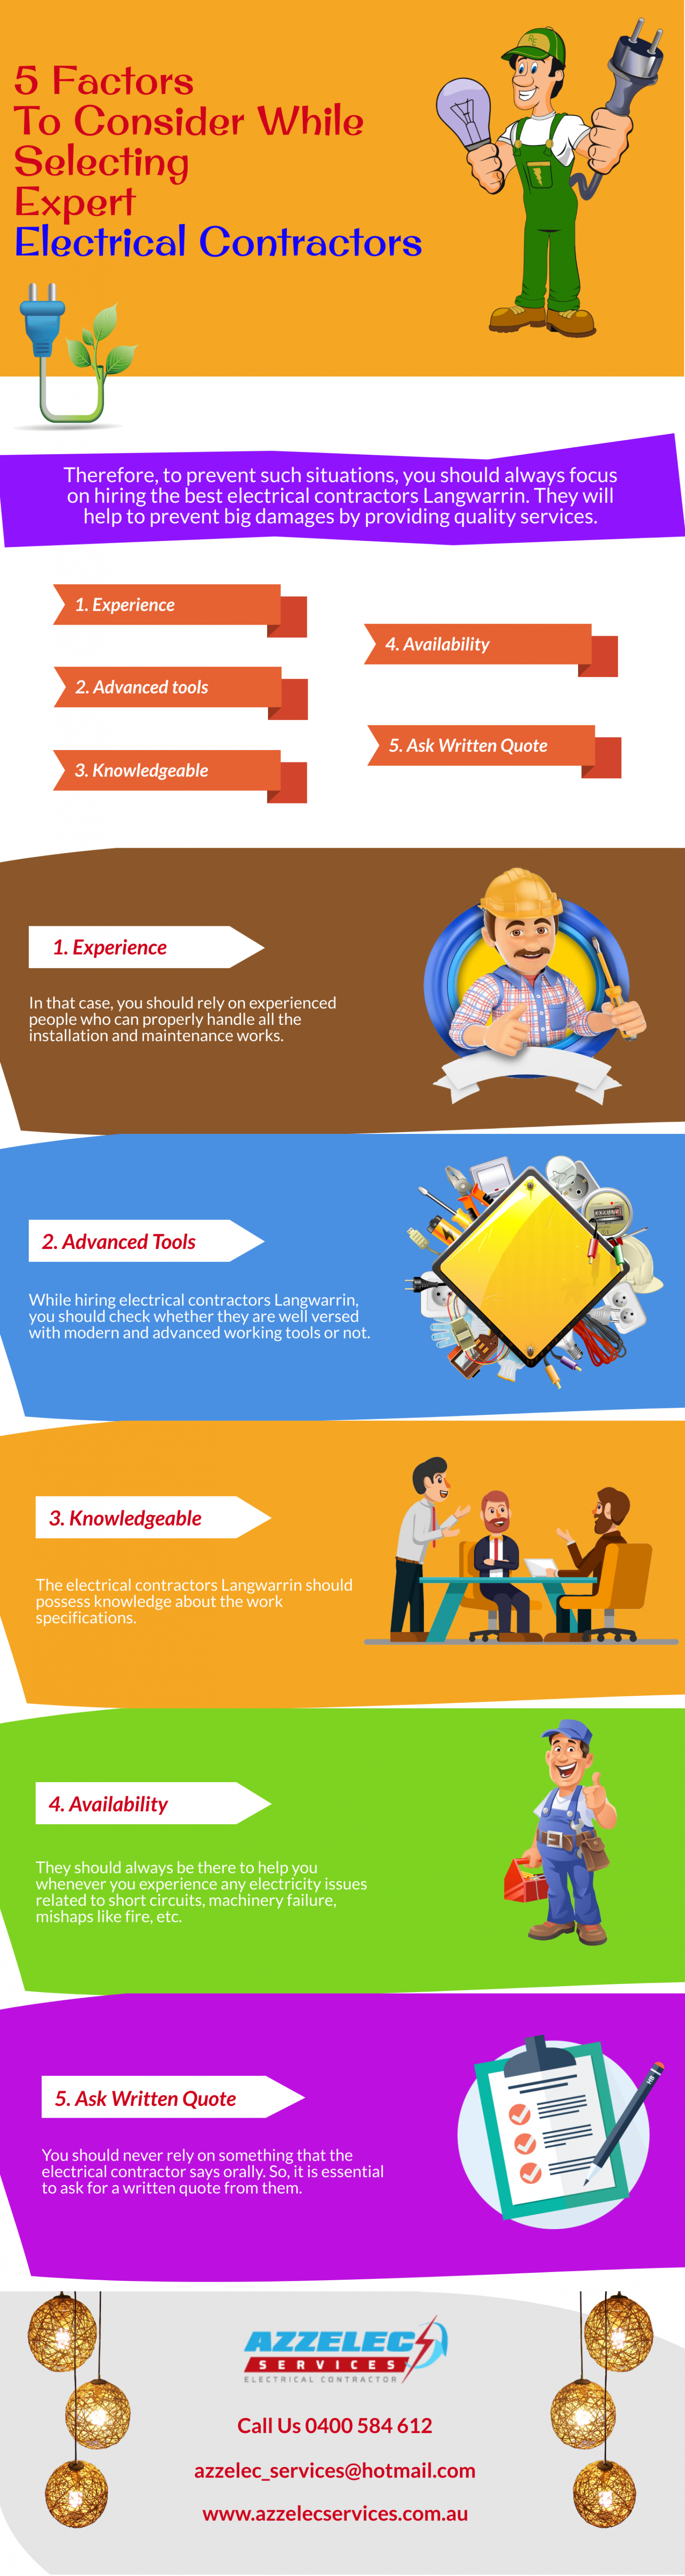 5 Factors To Consider While Selecting Expert Electrical Contractors Infographic